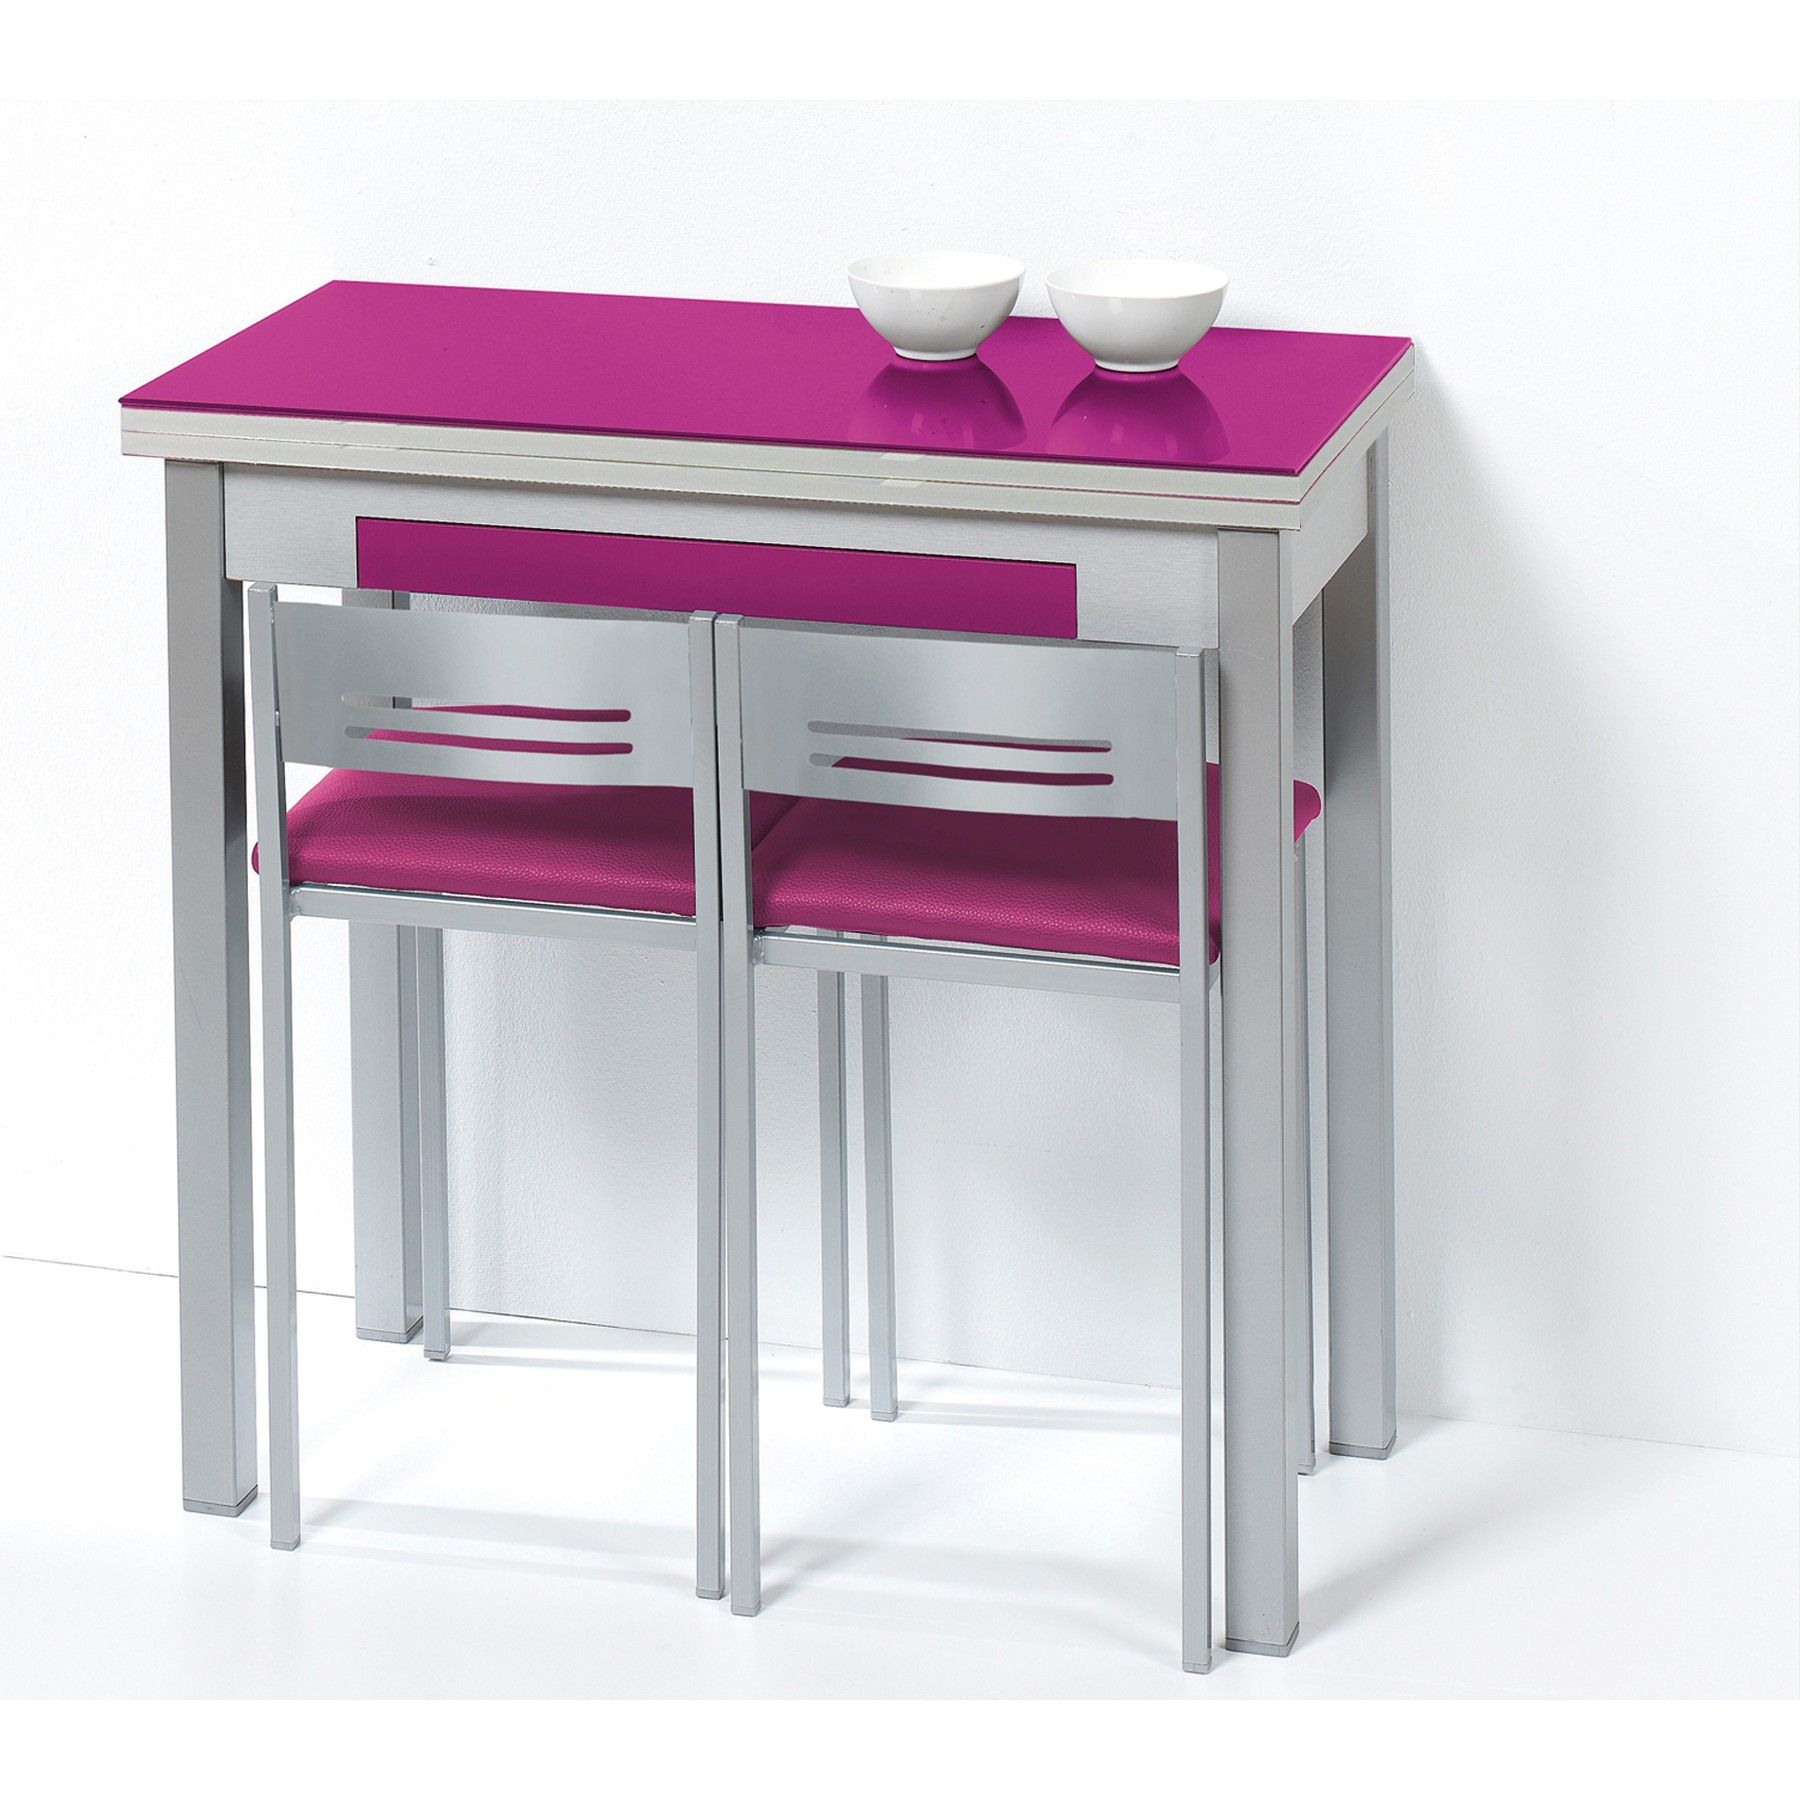 Pack de mesa libro de cocina y taburetes modelo magic - Mesa plegable pared cocina ...